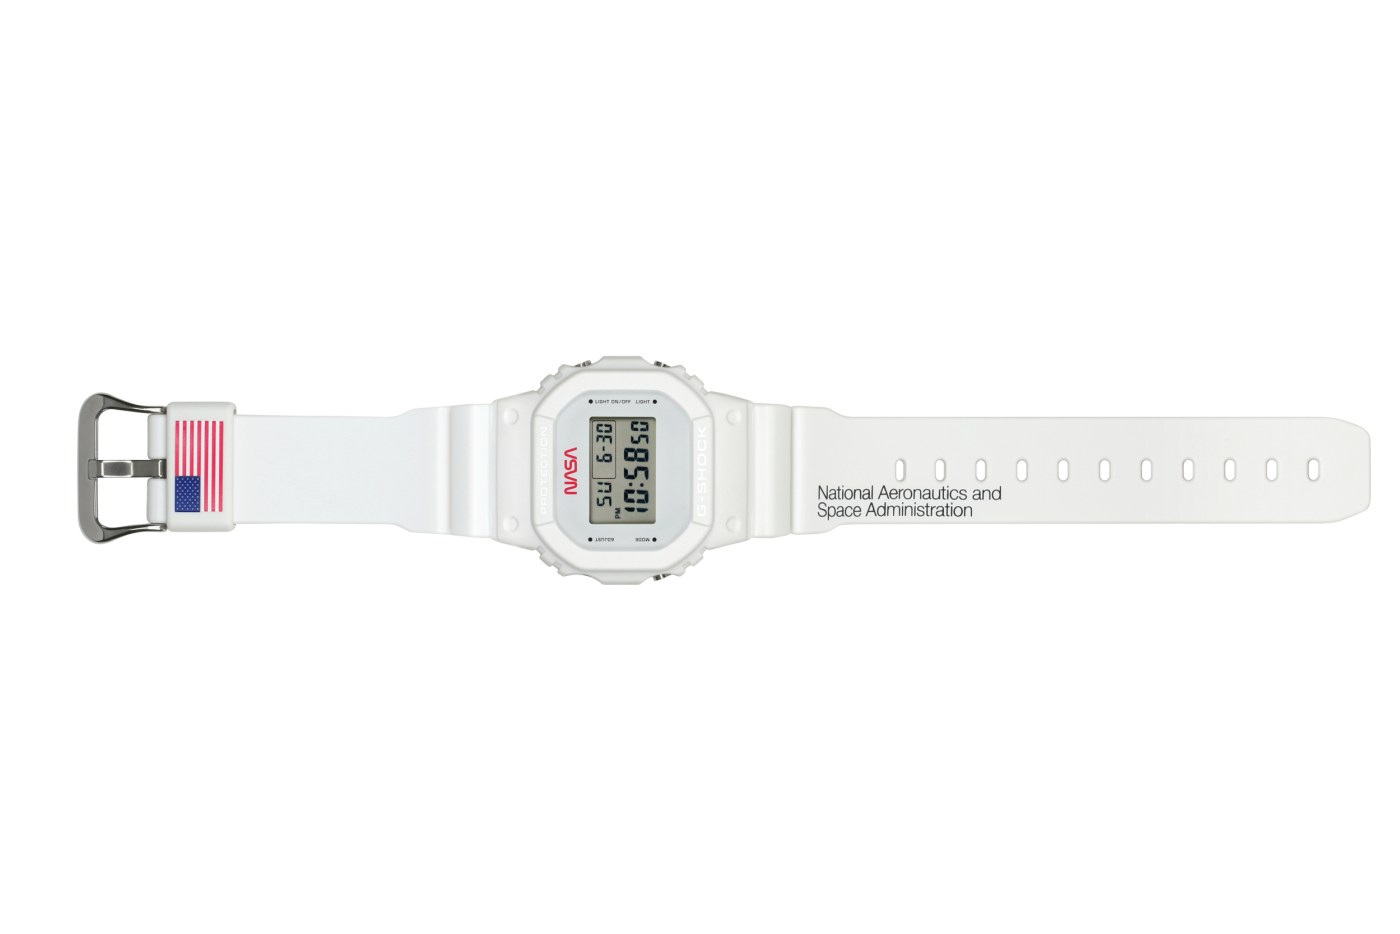 G-SHOCK X NASA DW5600